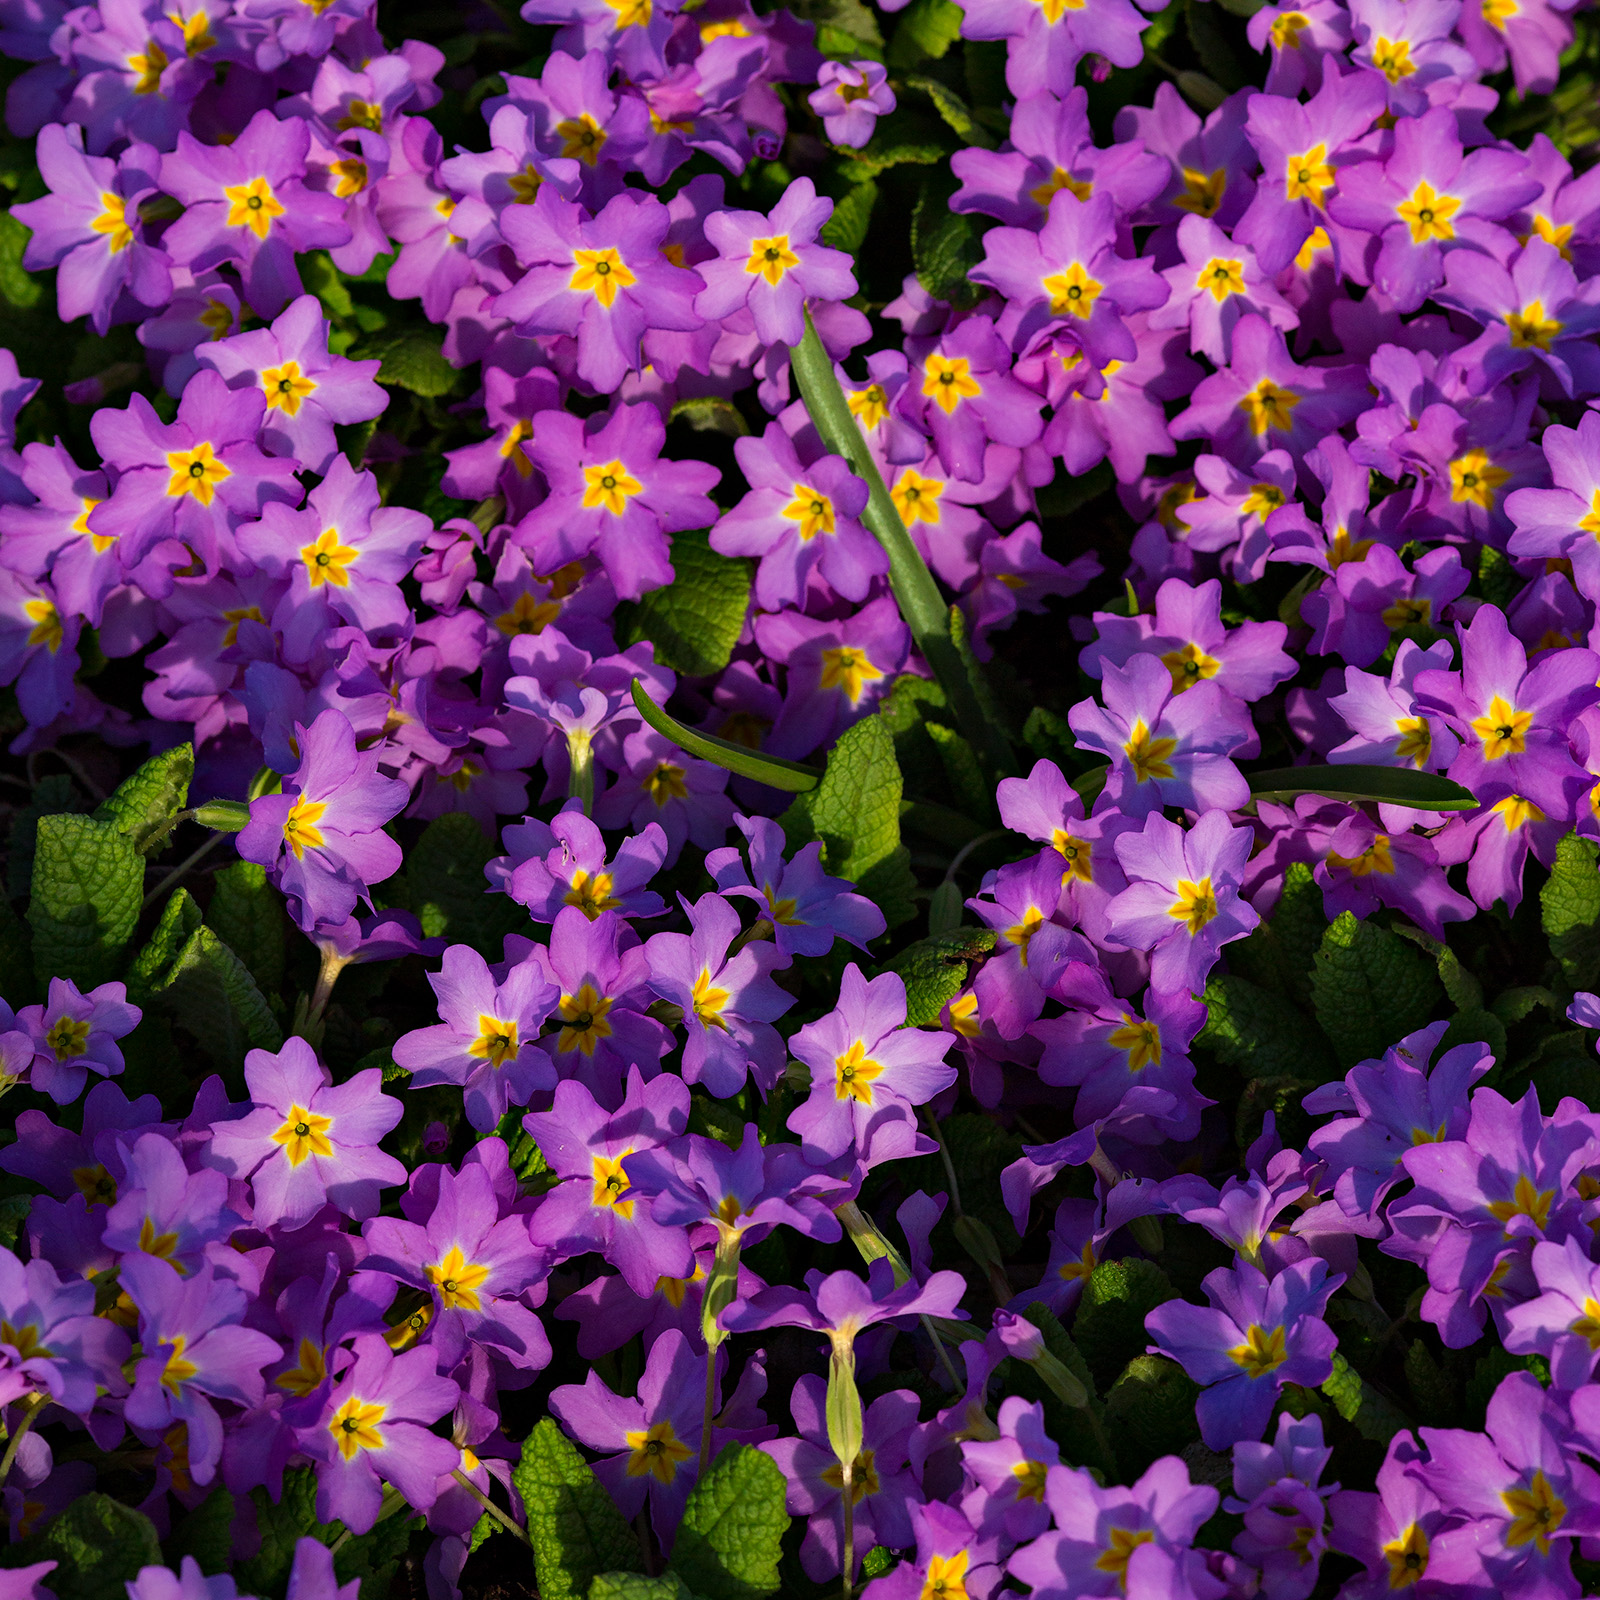 A mass of <i>Primula vulgaris</i> subsp. <i>sibthorpii</i> in UBC Botanical Garden